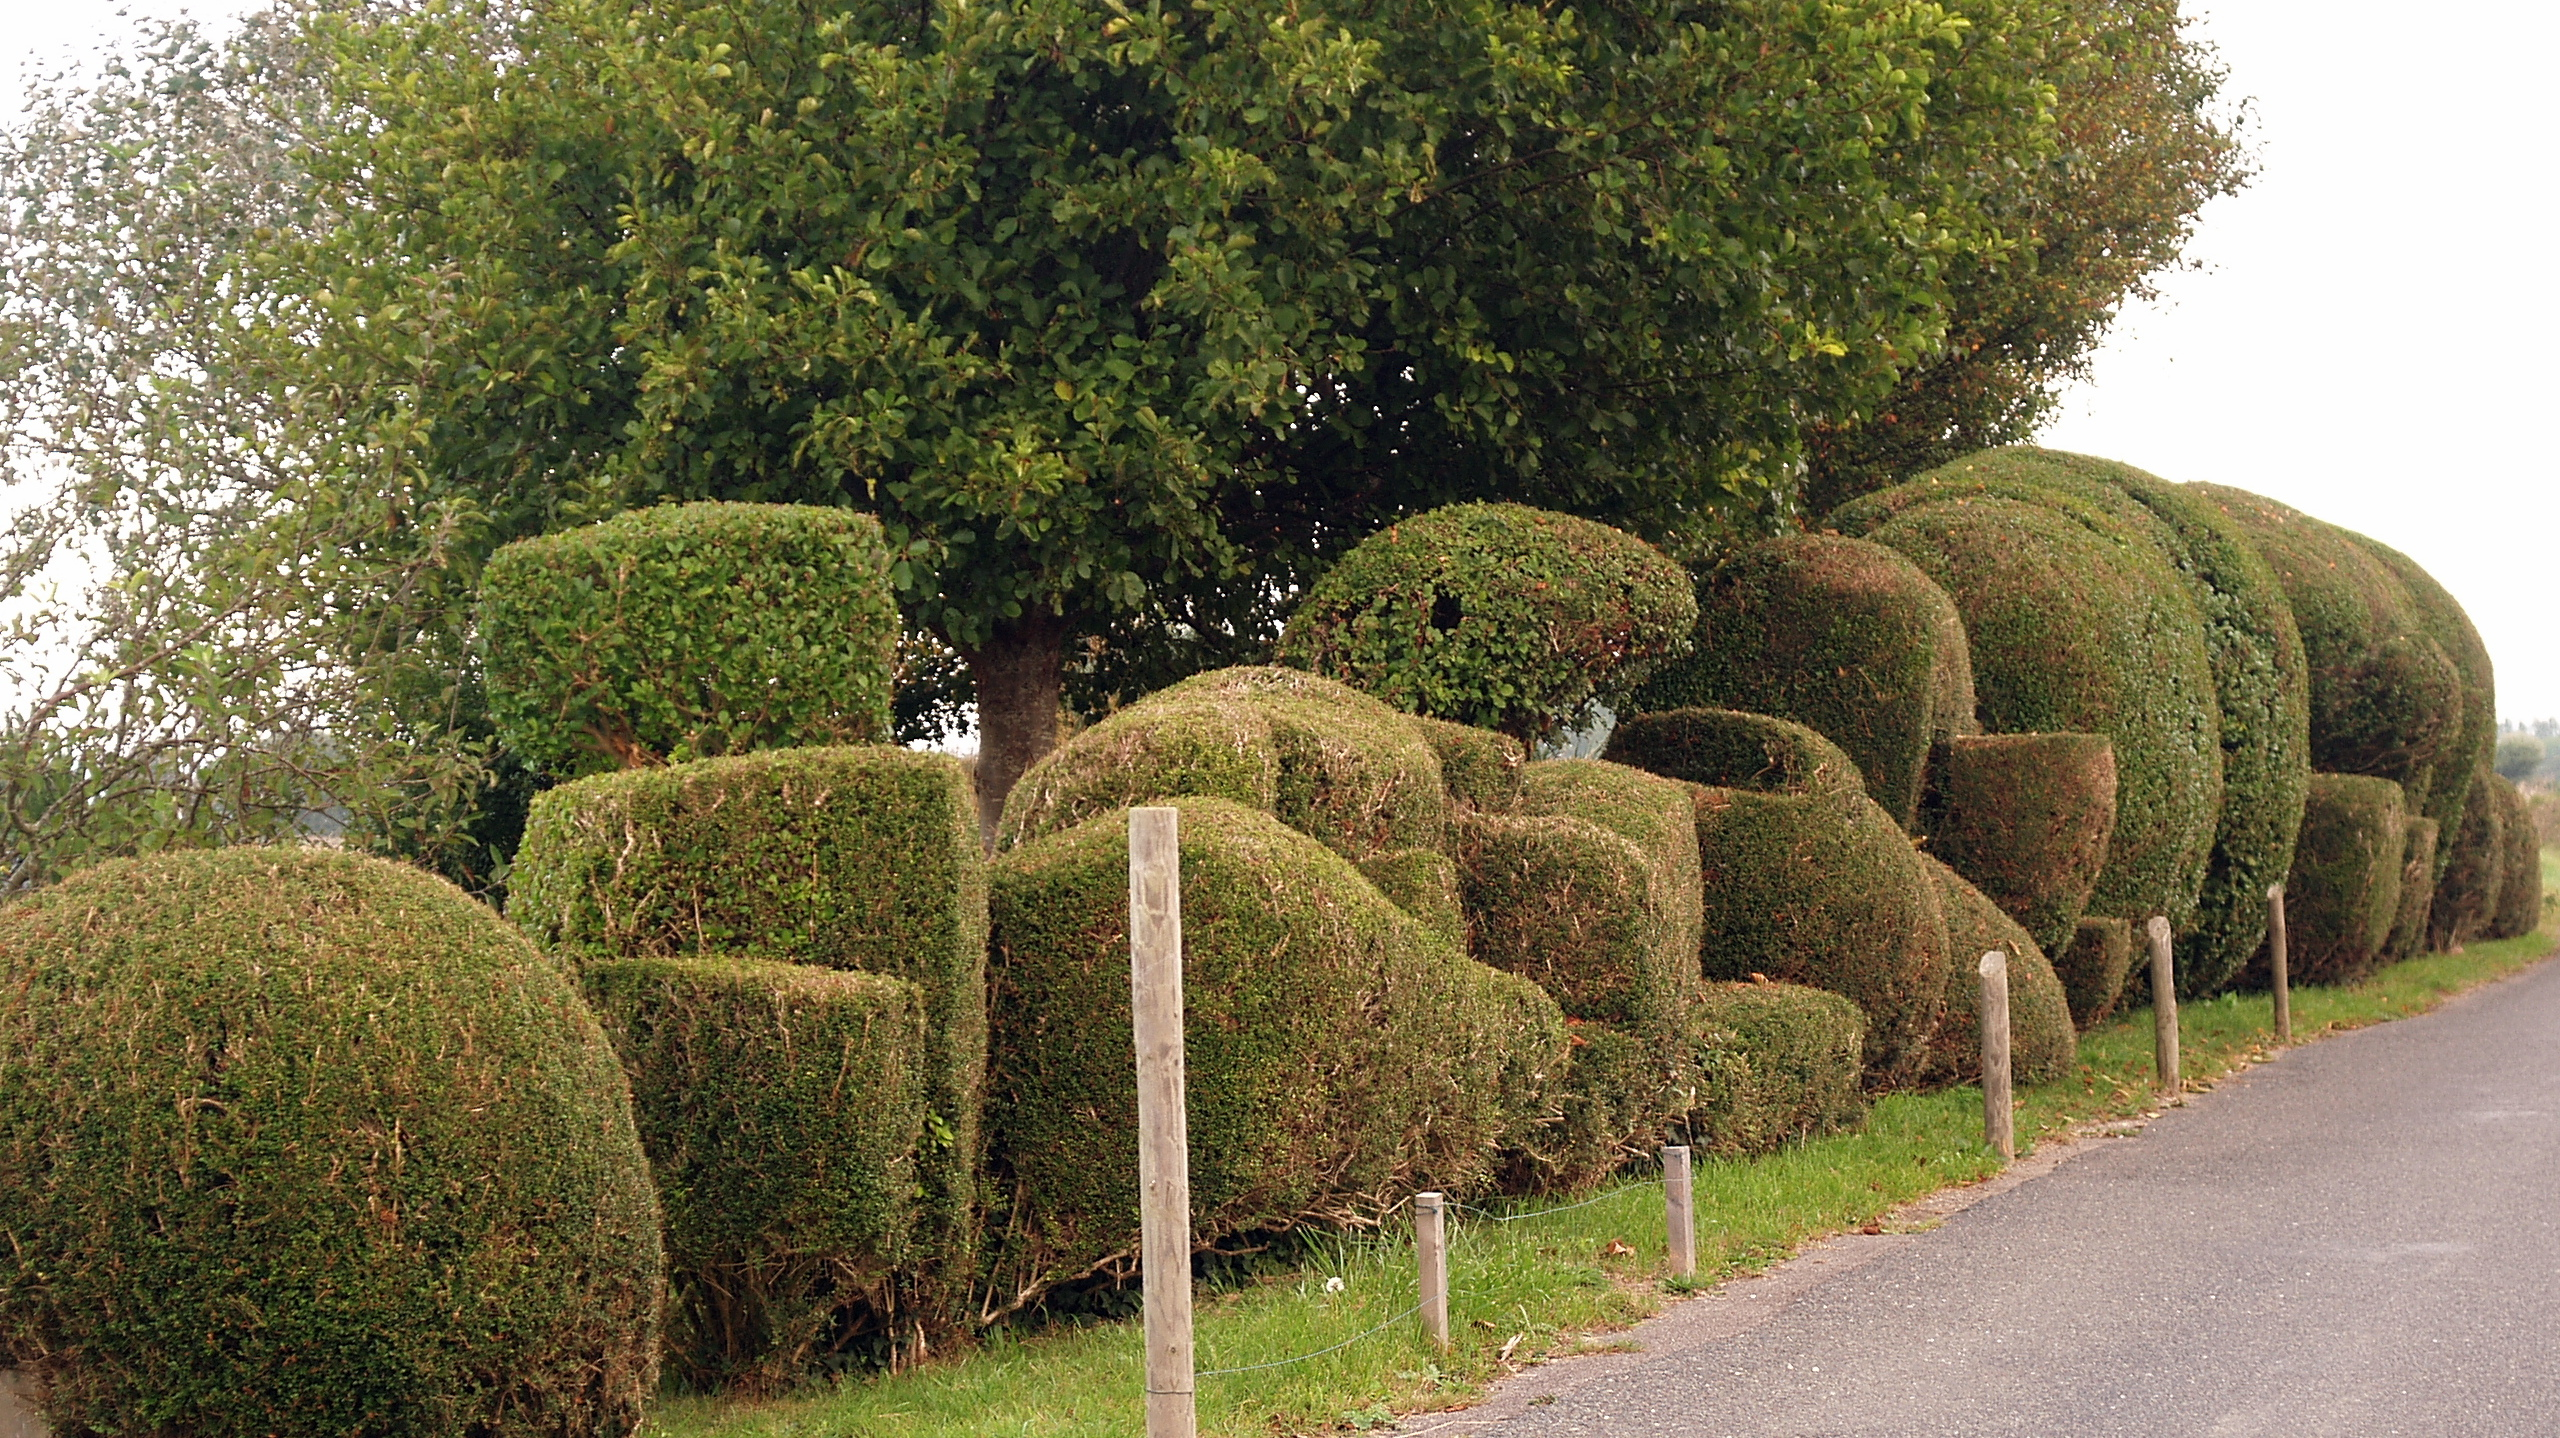 Cloud pruned hedges \u0026 topiary fun | An Englishman\u0027s Garden Adventures